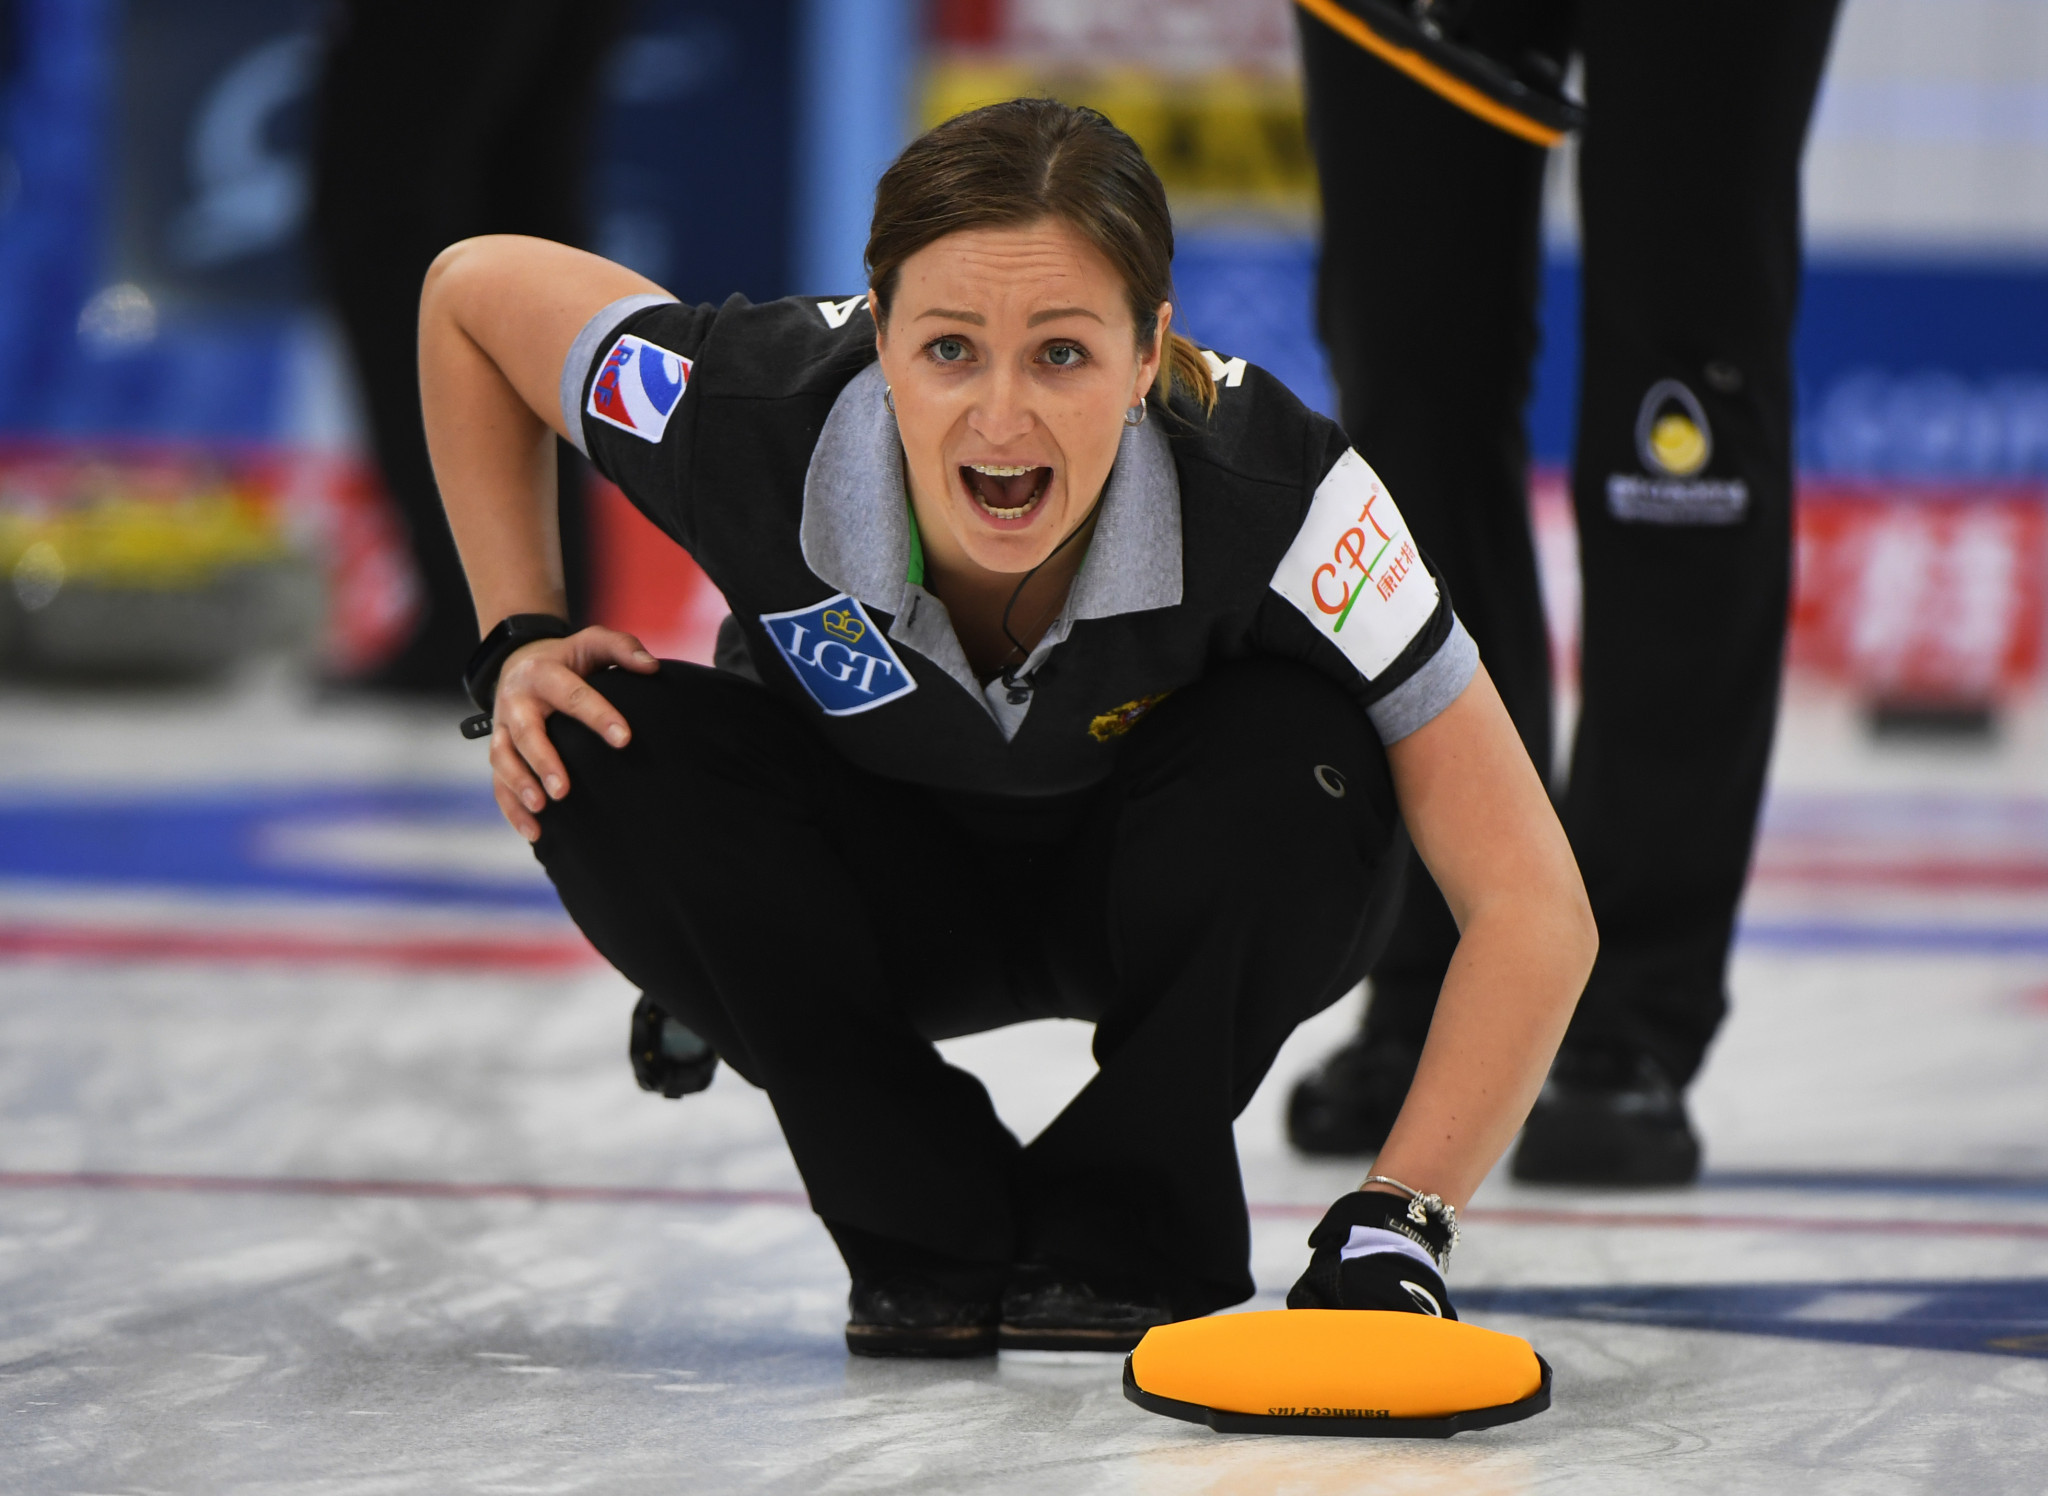 Alina Kovaleva skipped Russia's women's curling team to a second place finish at the 2021 World Championships ©Getty Images